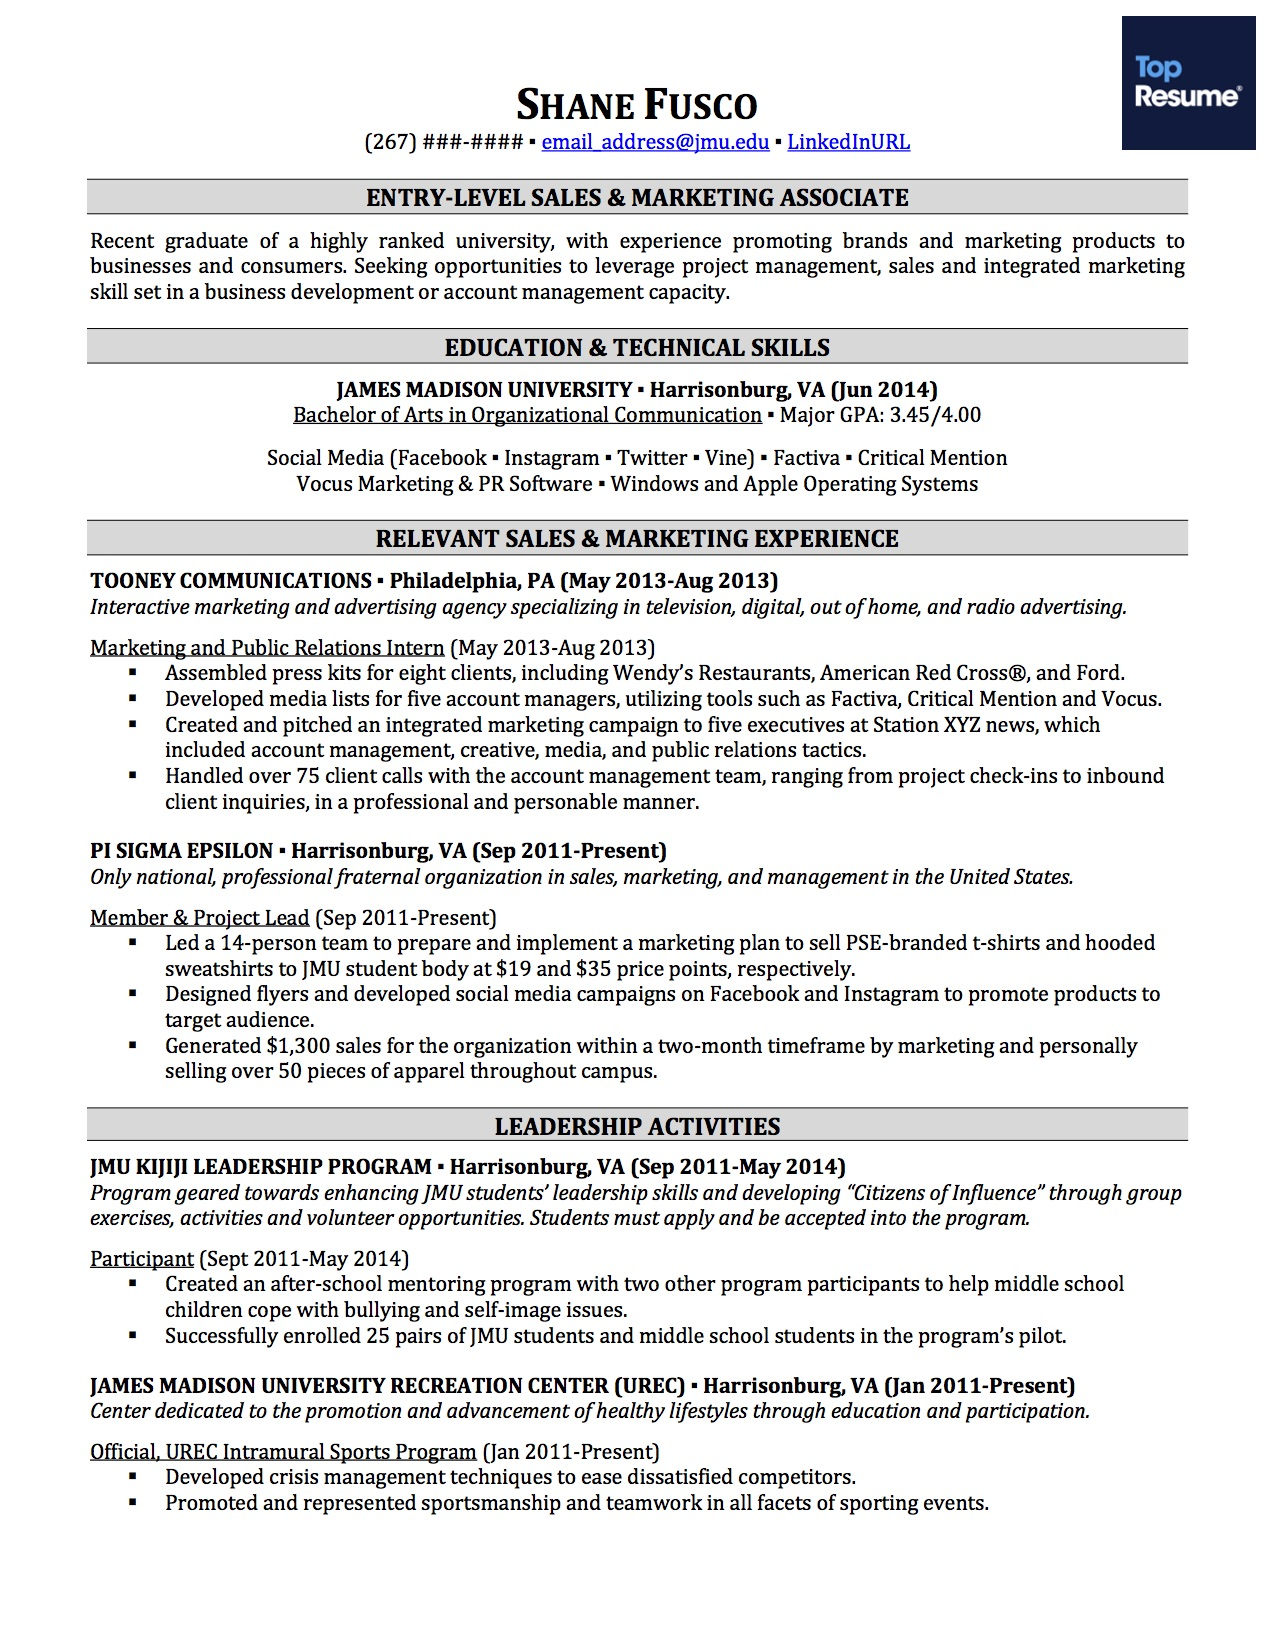 decide on a resume format - No Experience Resume